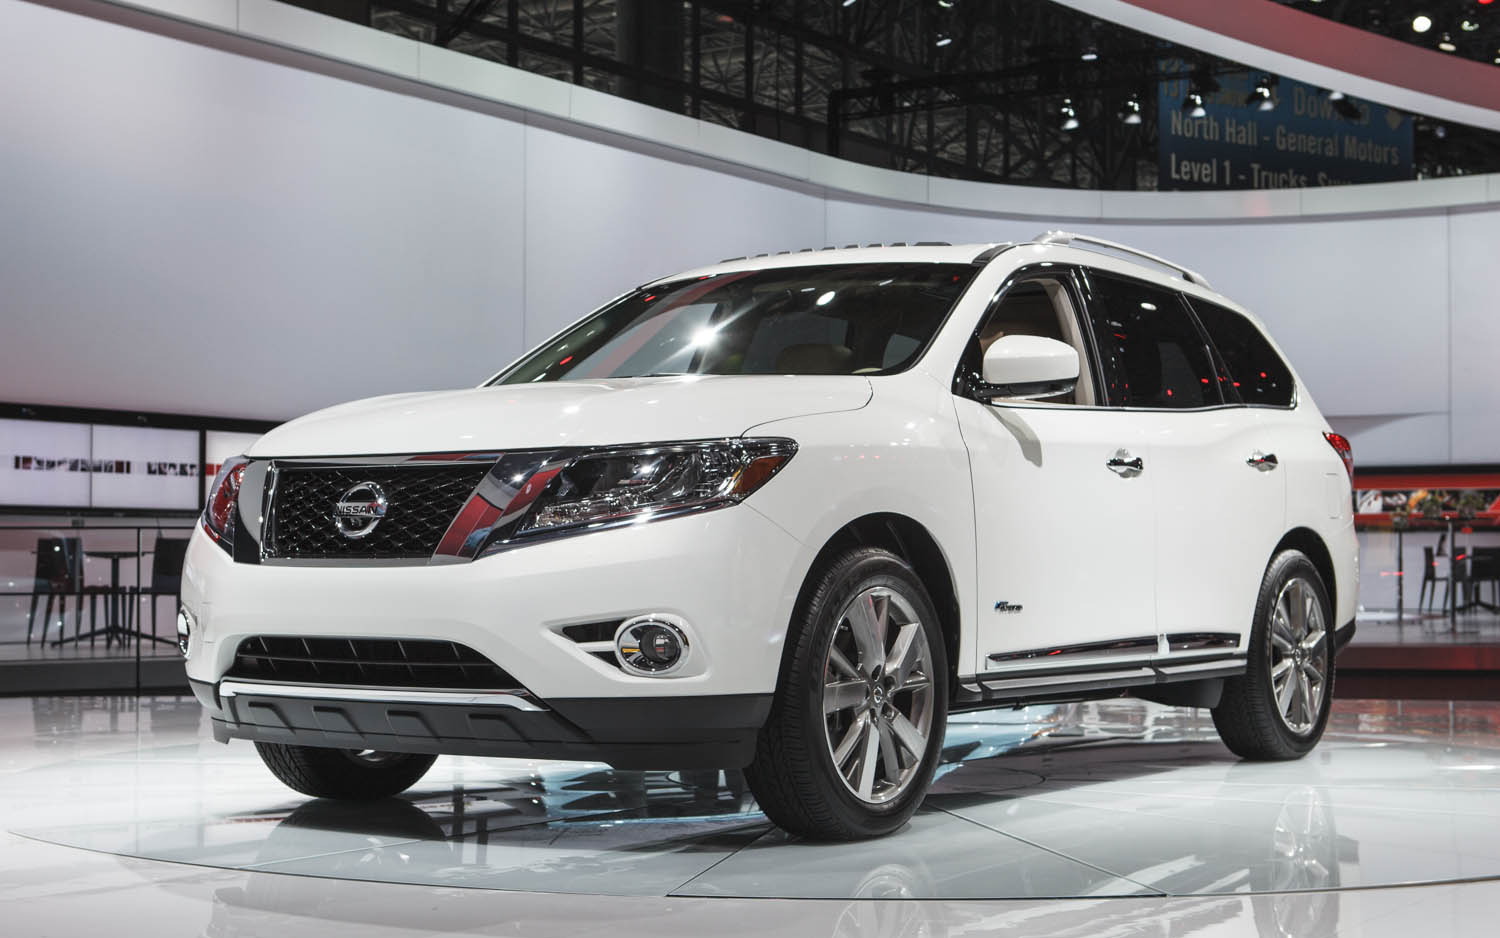 2014 Nissan Pathfinder Hybrid Boasts Supercharged I 4, 26 MPG Combined